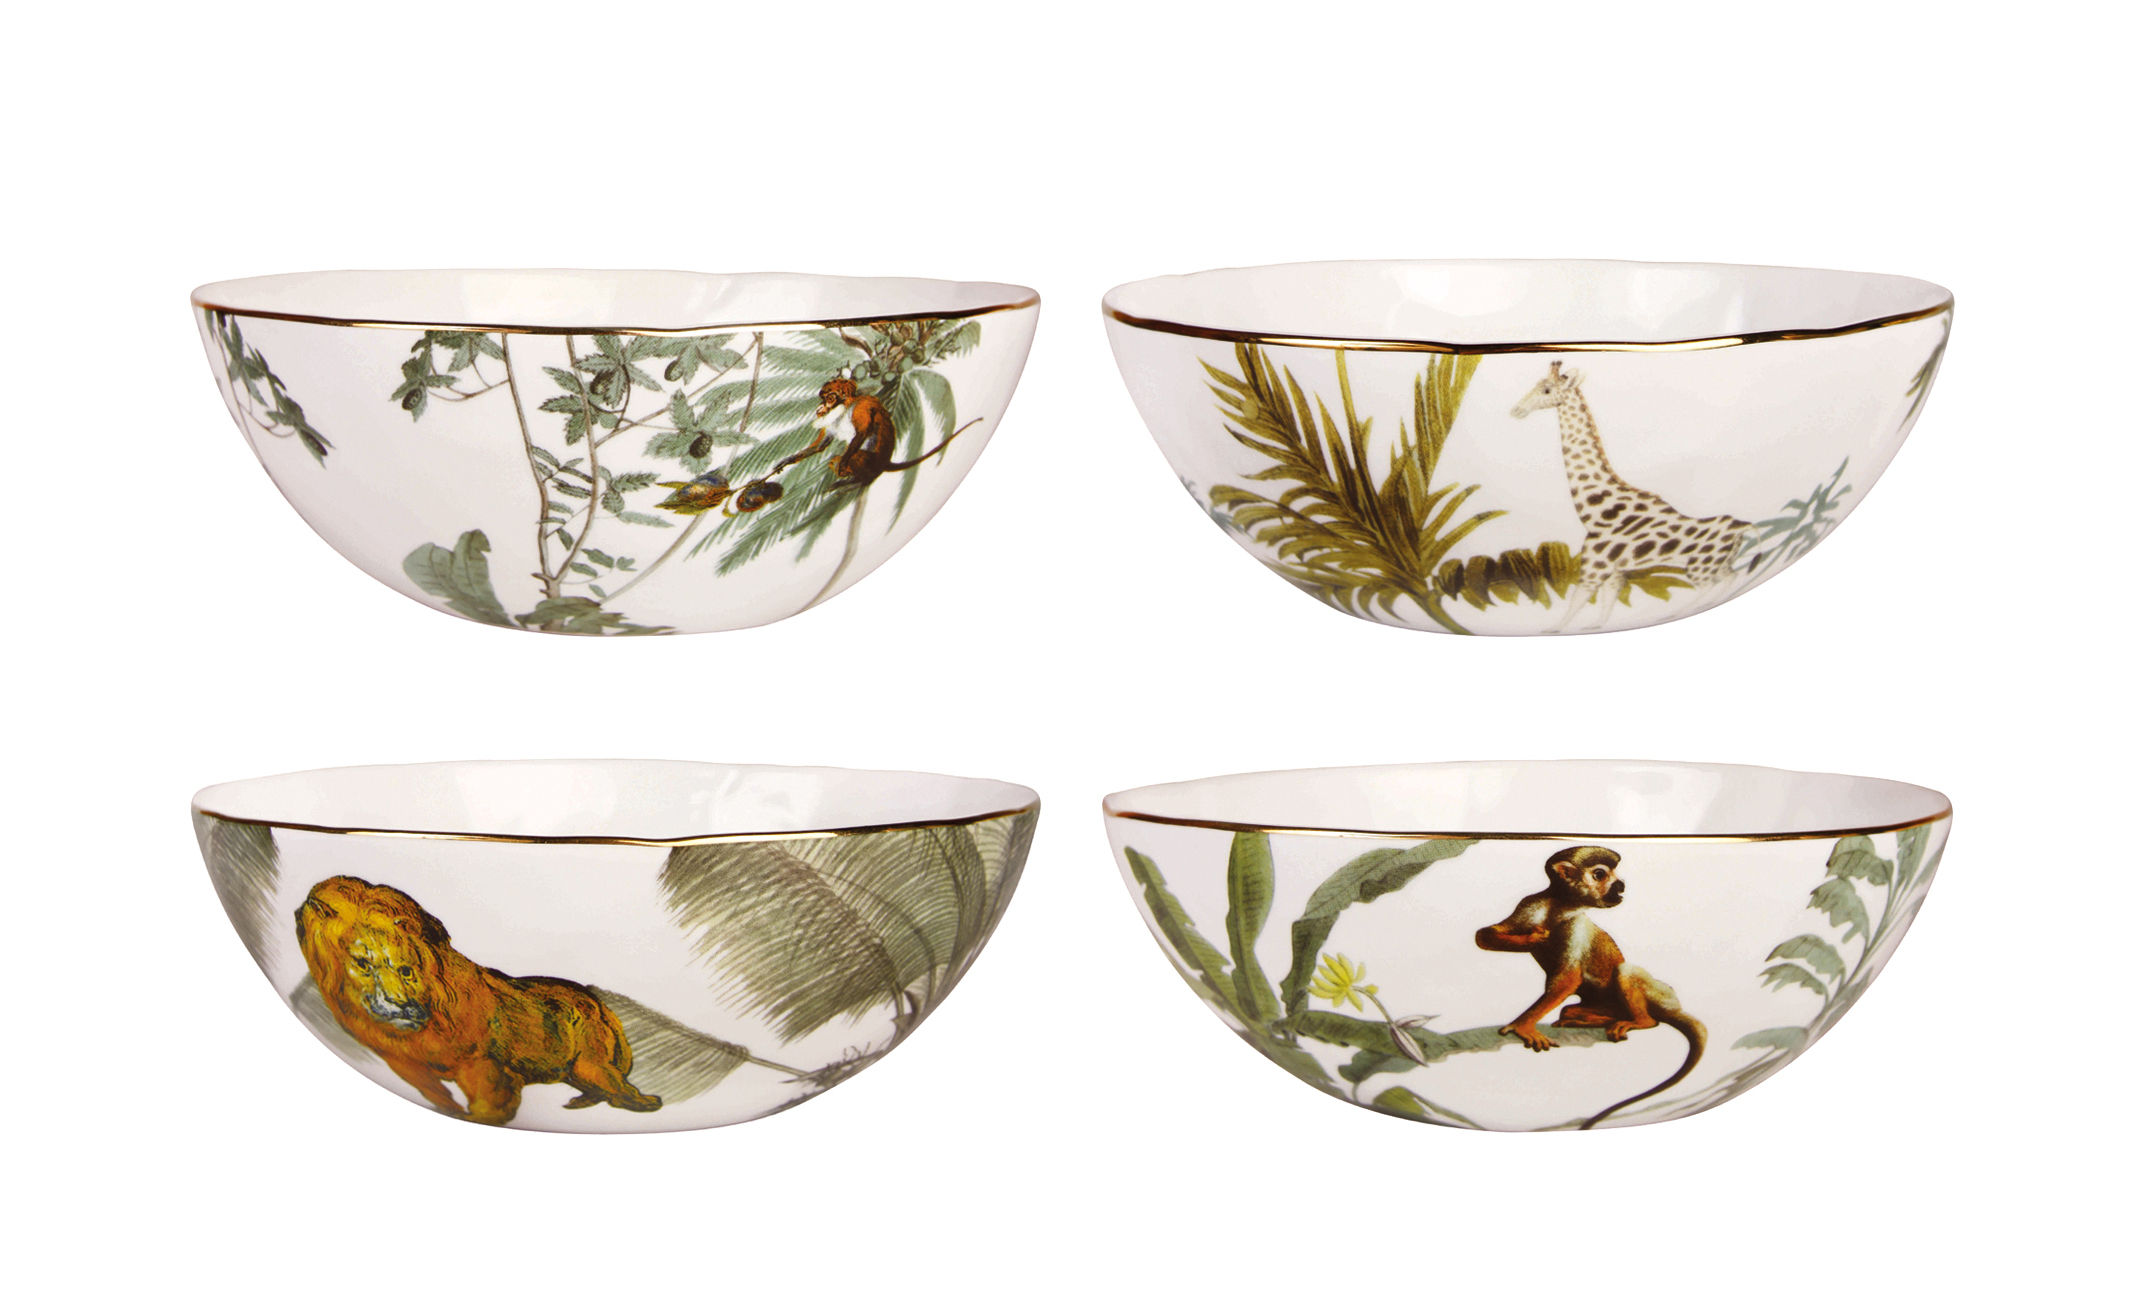 Arts de la table - Saladiers, coupes et bols - Bol Jungle / Set de 4 - Porcelaine - & klevering - Jungle / Multicolore - Porcelaine fine